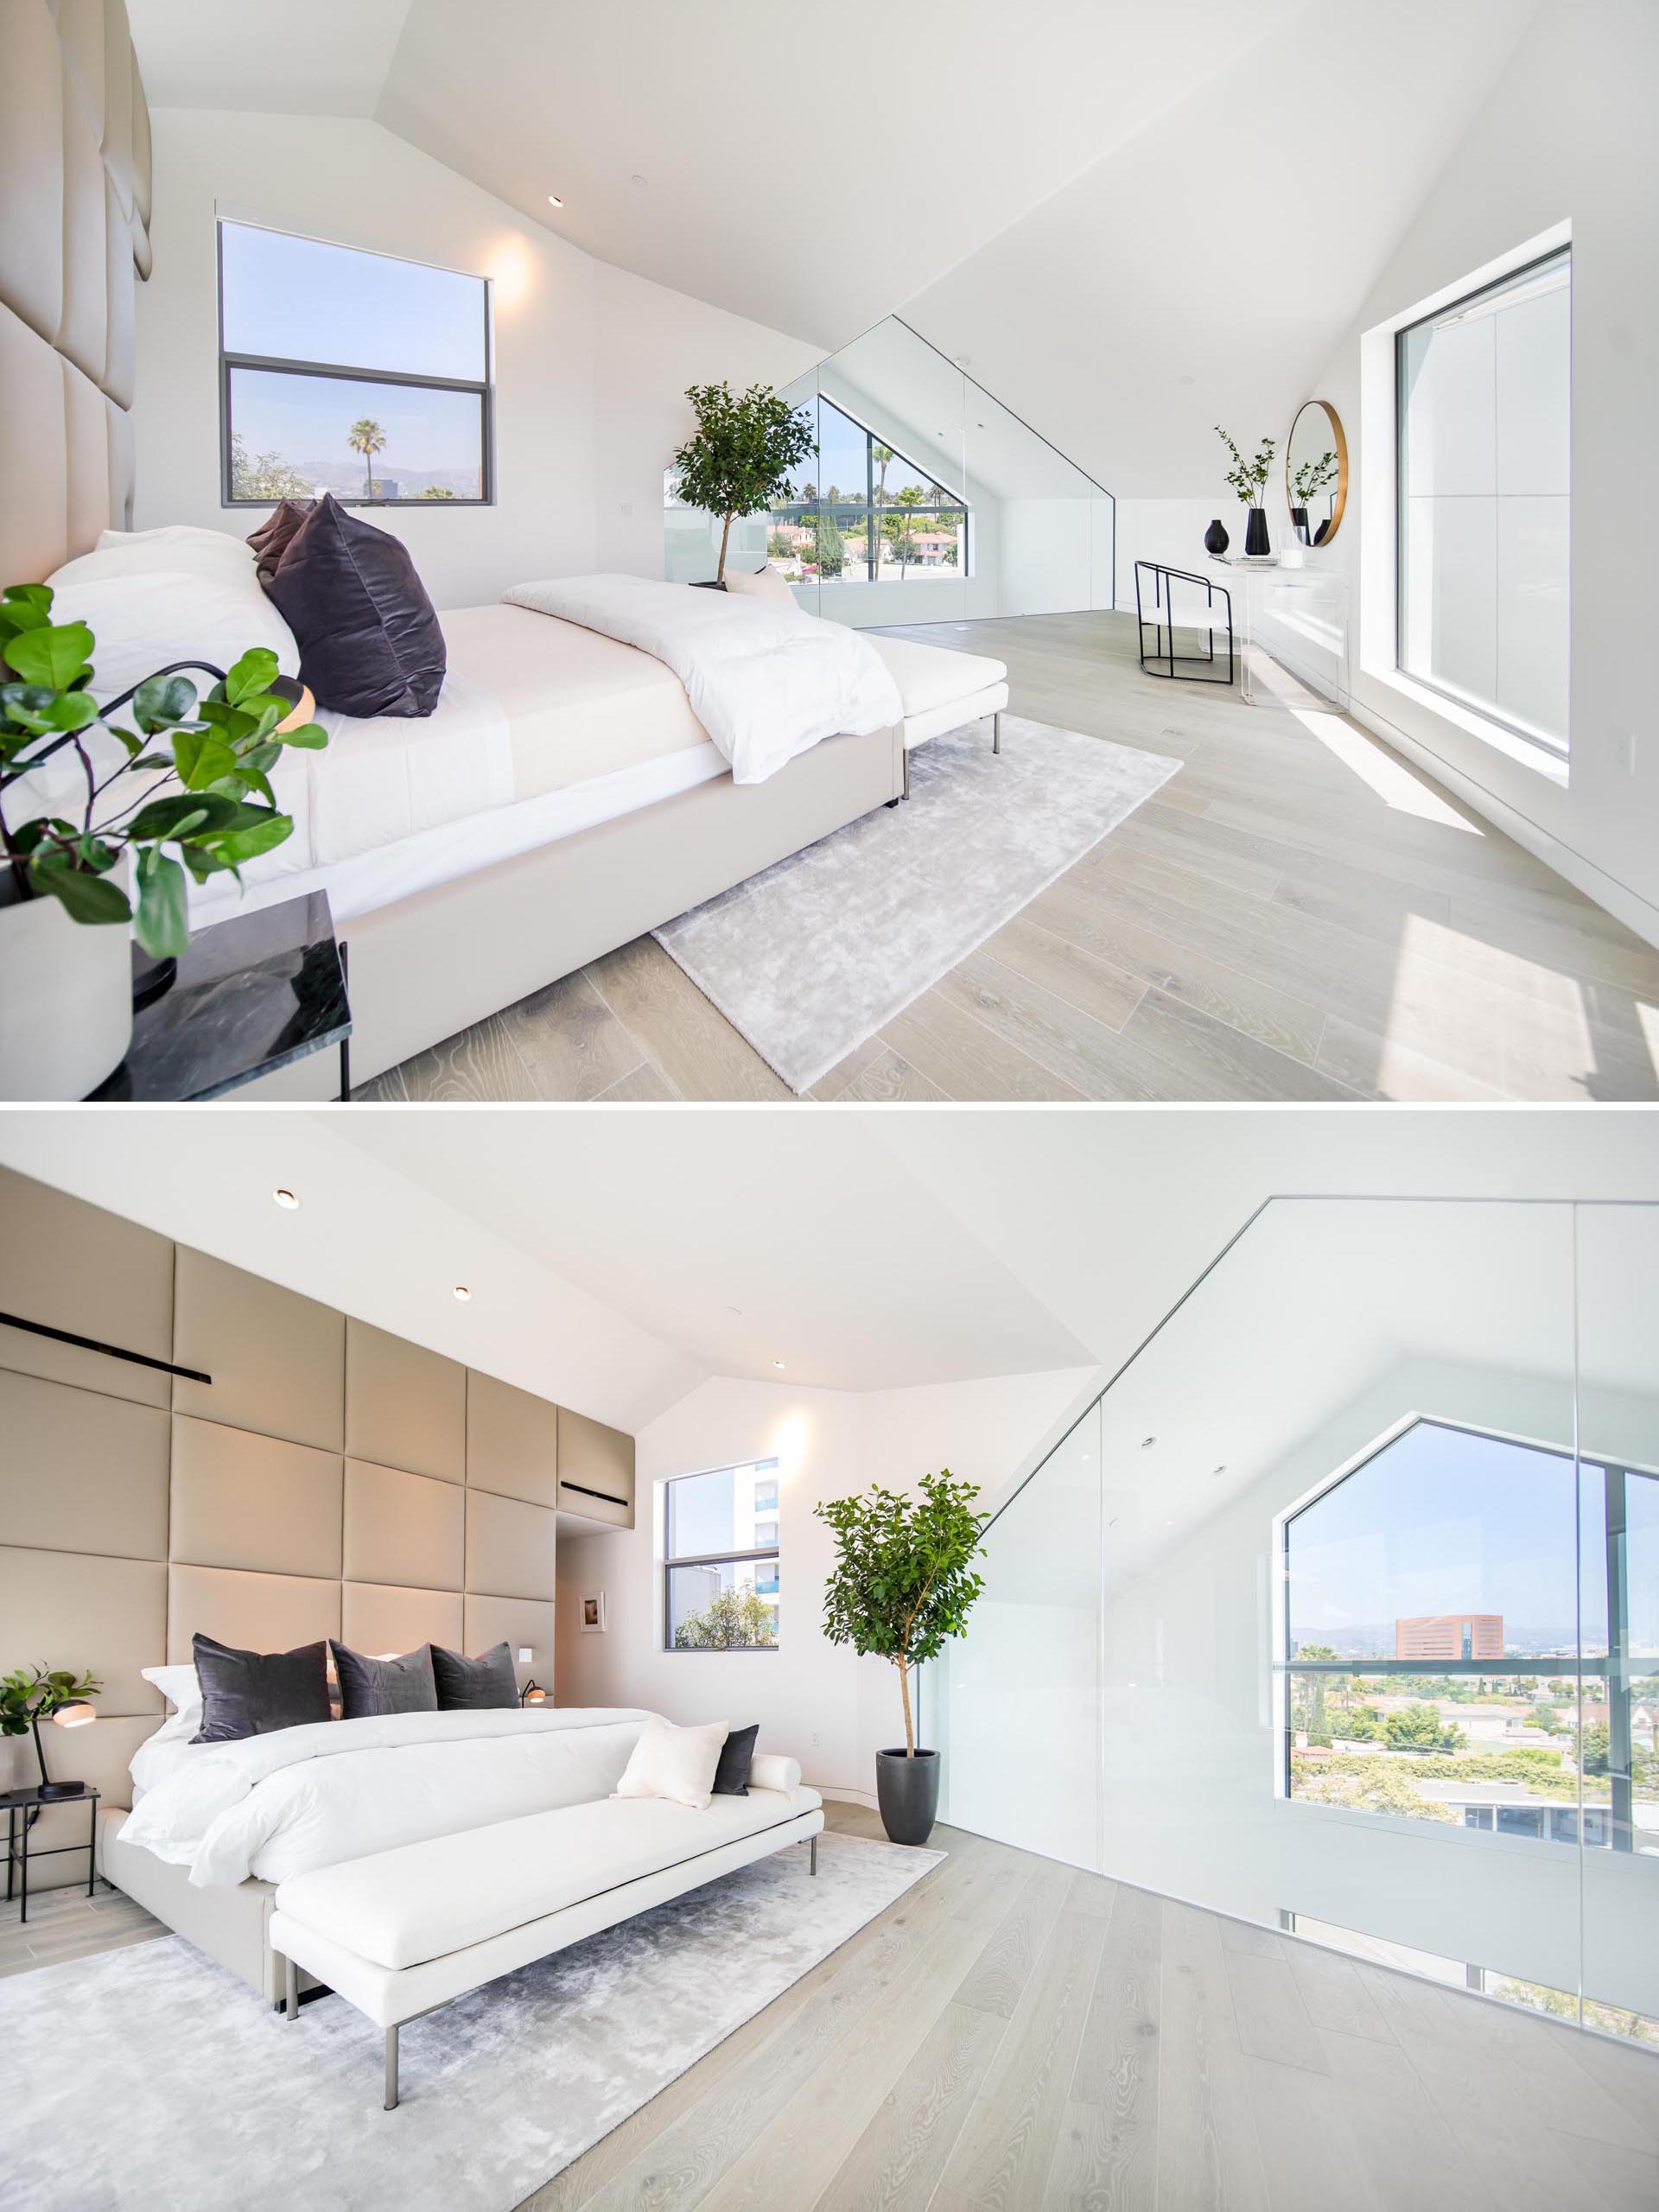 A modern bedroom with upholstered accent wall, and a glass wall that overlooks the living room.